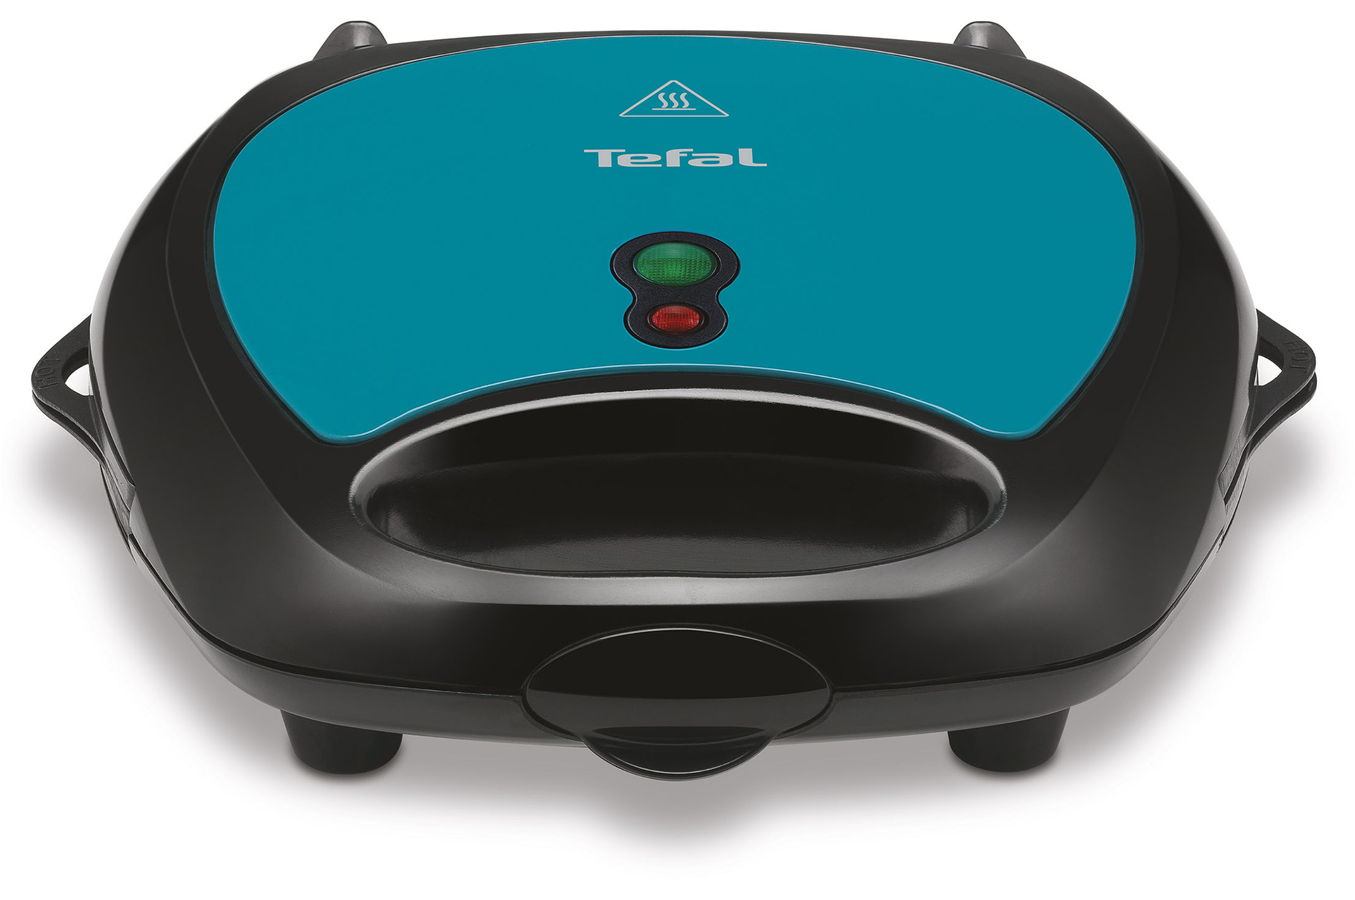 Appareil Convivial Of Gaufrier Croque Monsieur Tefal Sw617412 Simply Compact